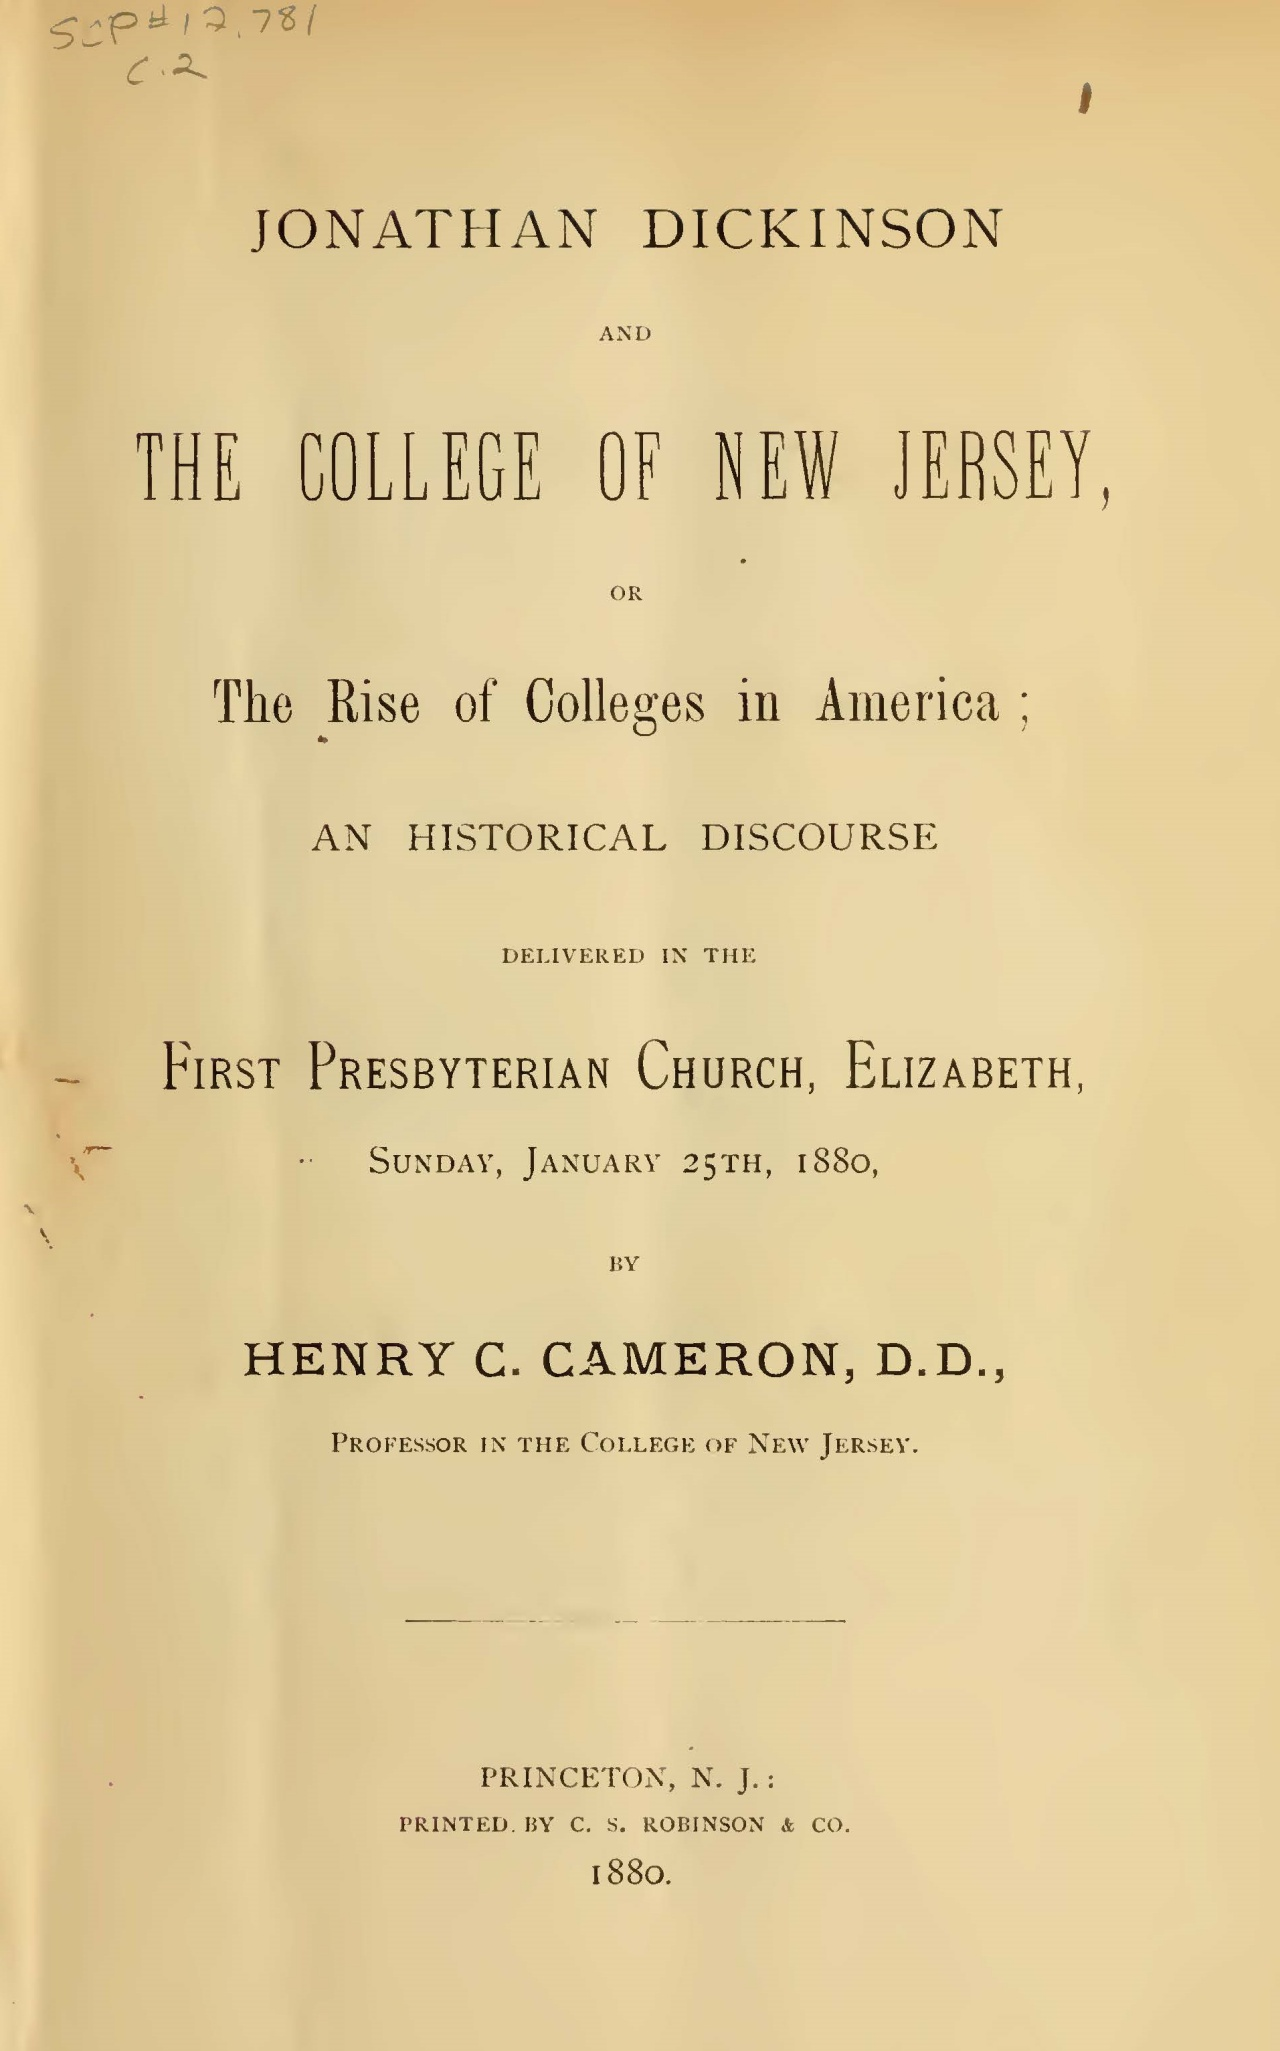 Cameron, Henry Clay, Jonathan Dickinson and the College of New Jersey Title Page.jpg